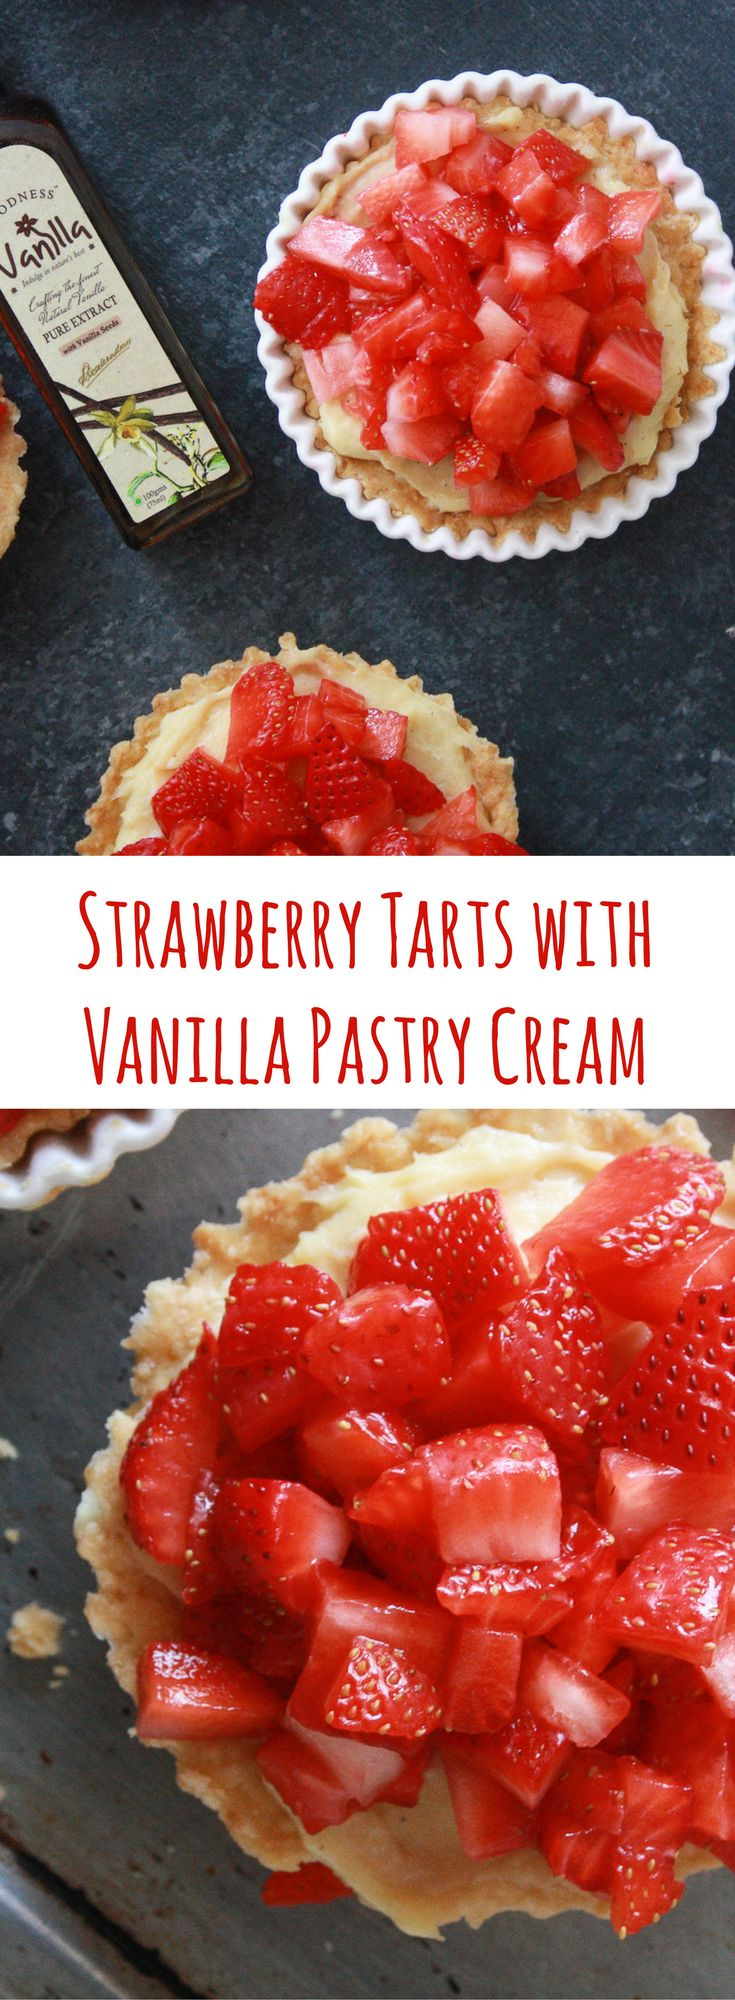 Fresh strawberry tarts with a rich, vanilla bean infused pastry cream!